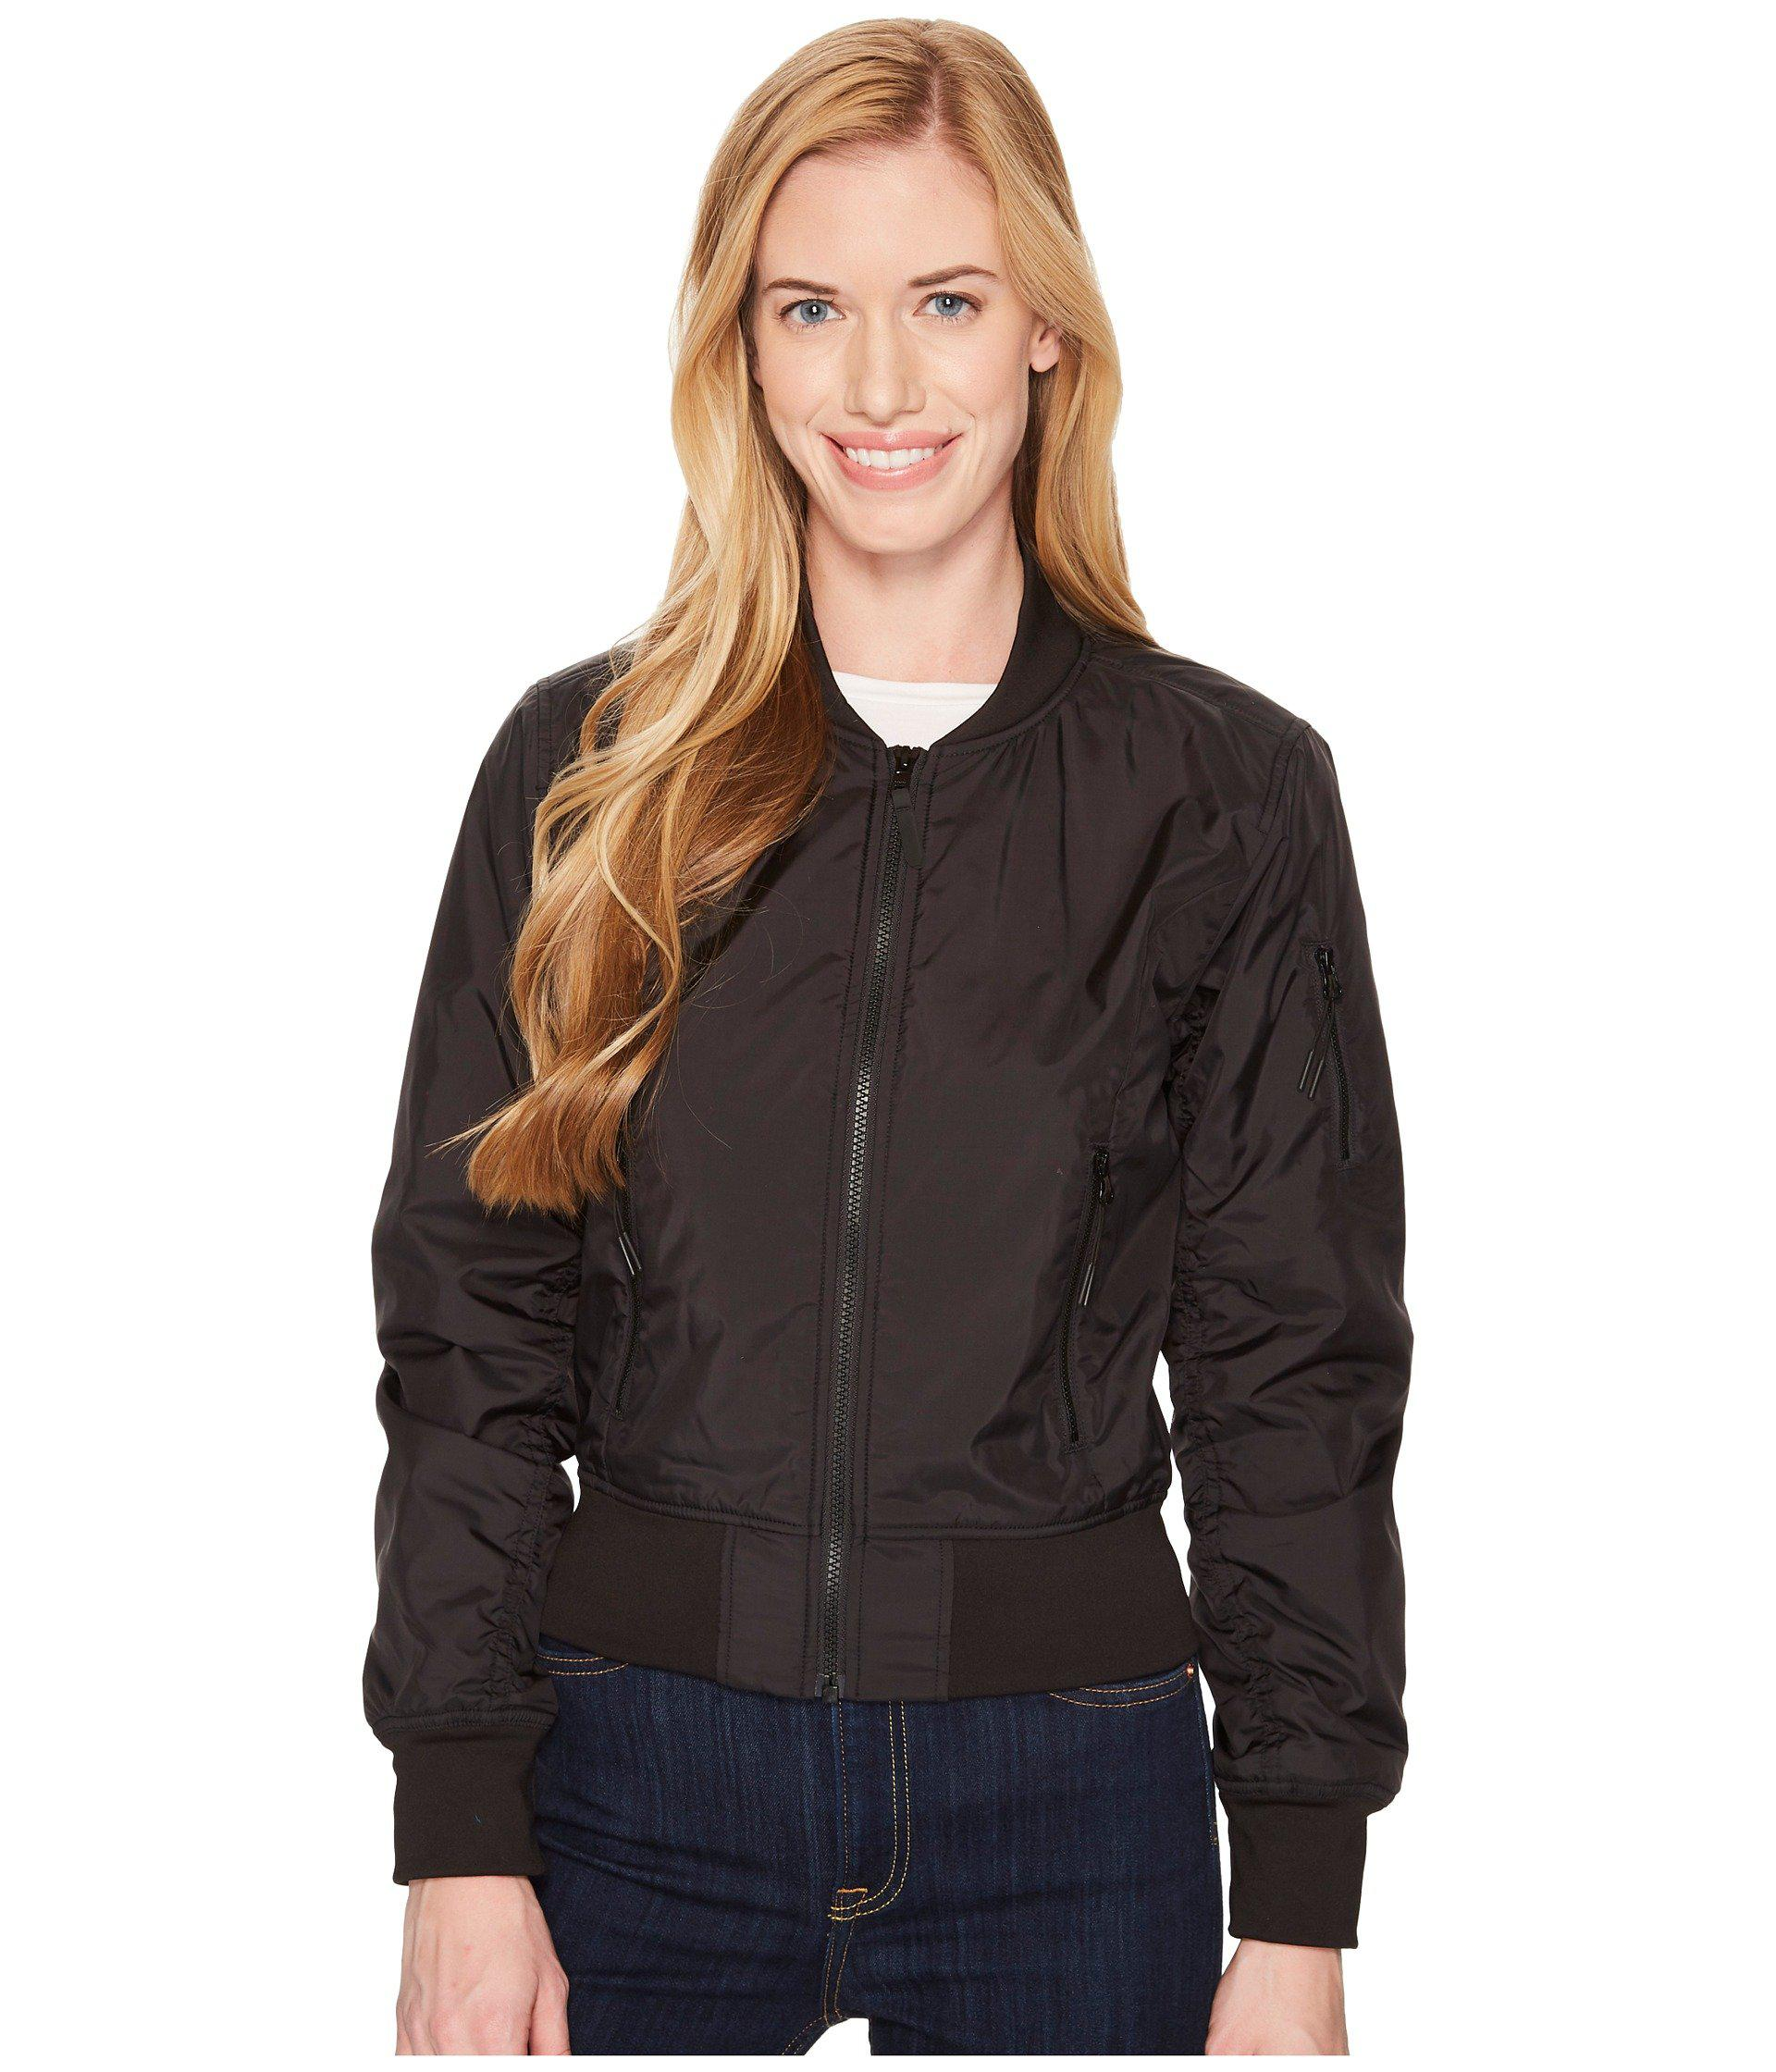 Lyst - The North Face Beyond The Wall Insulated Jacket in Black ... 5d75a23af